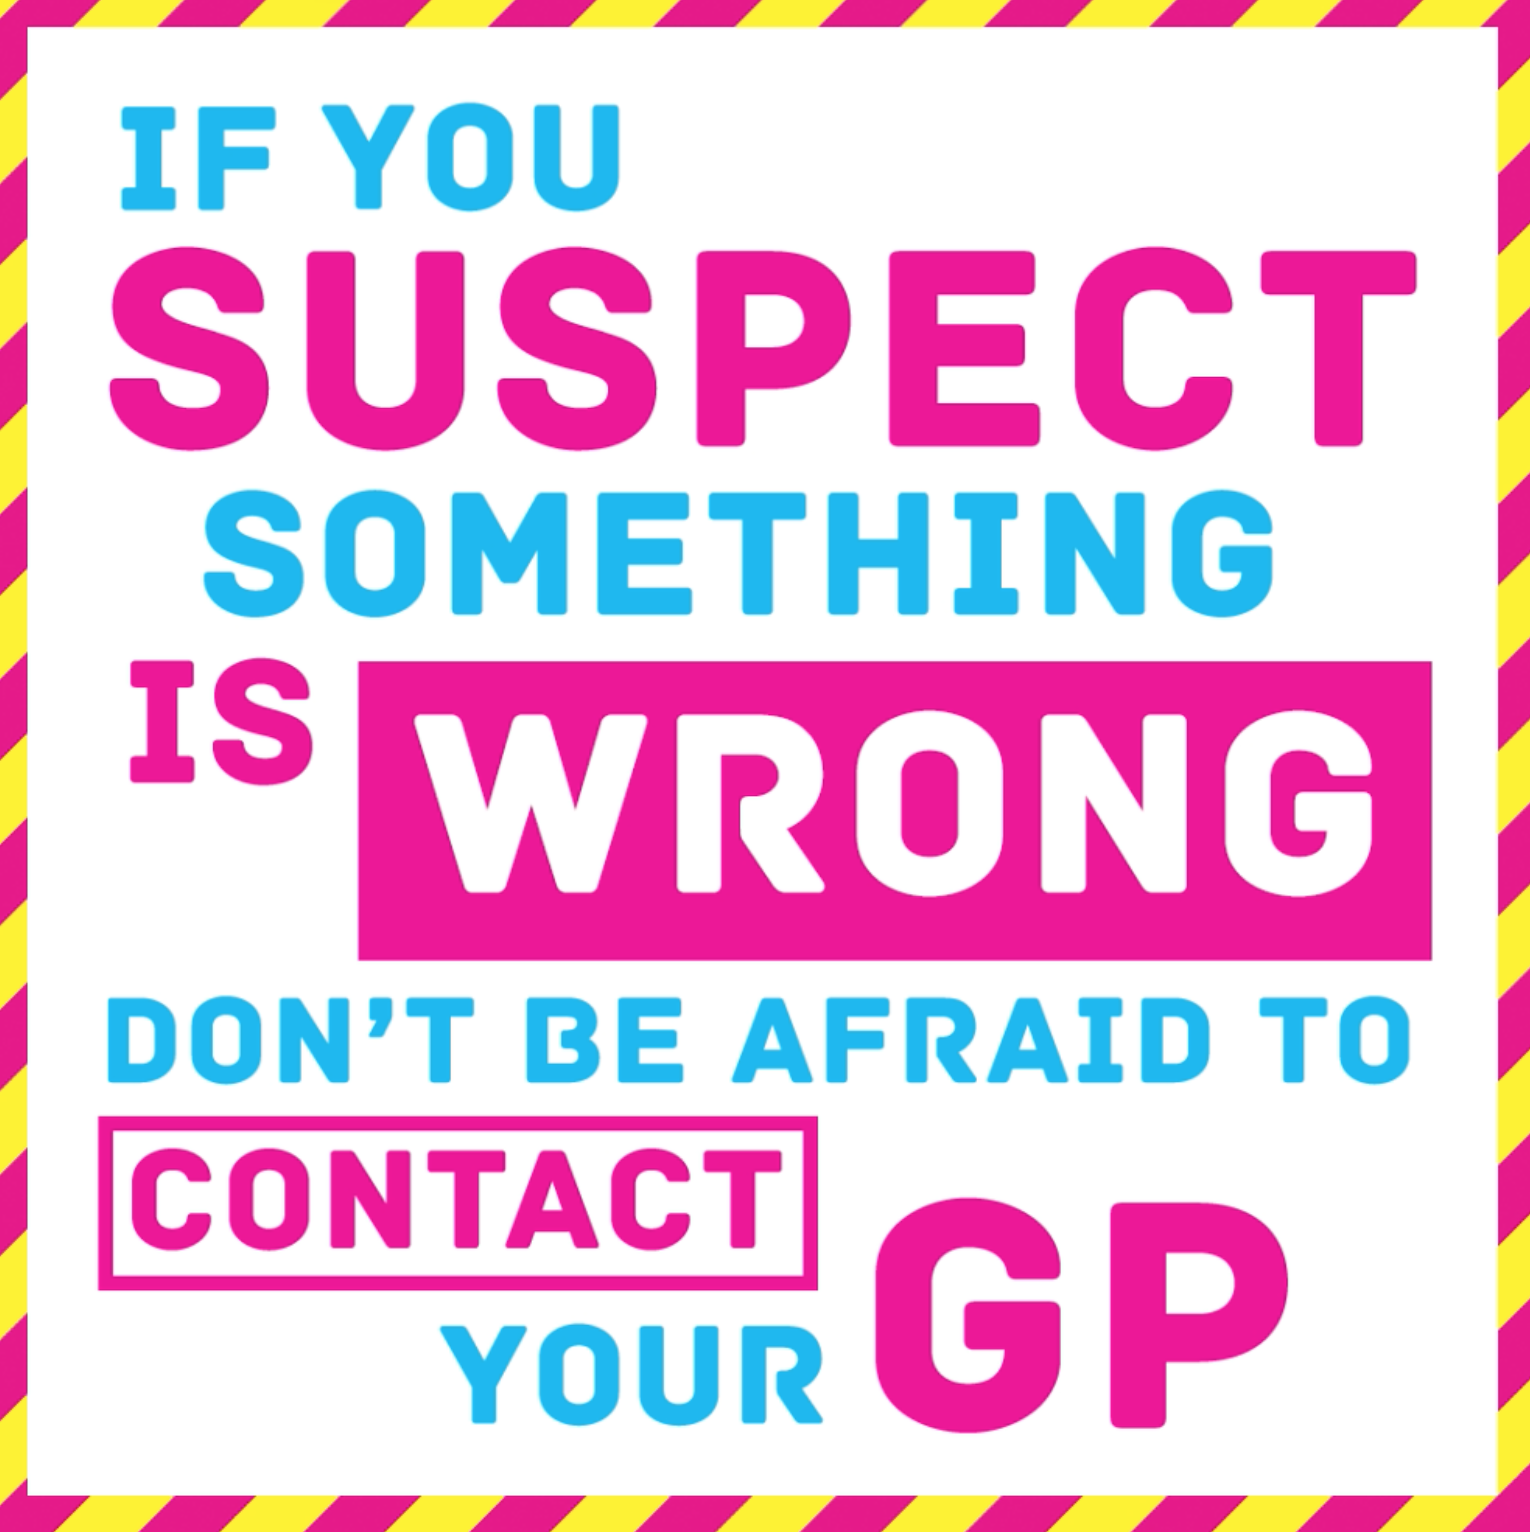 If you suspect something is wrong, don't be afraid to contact your GP